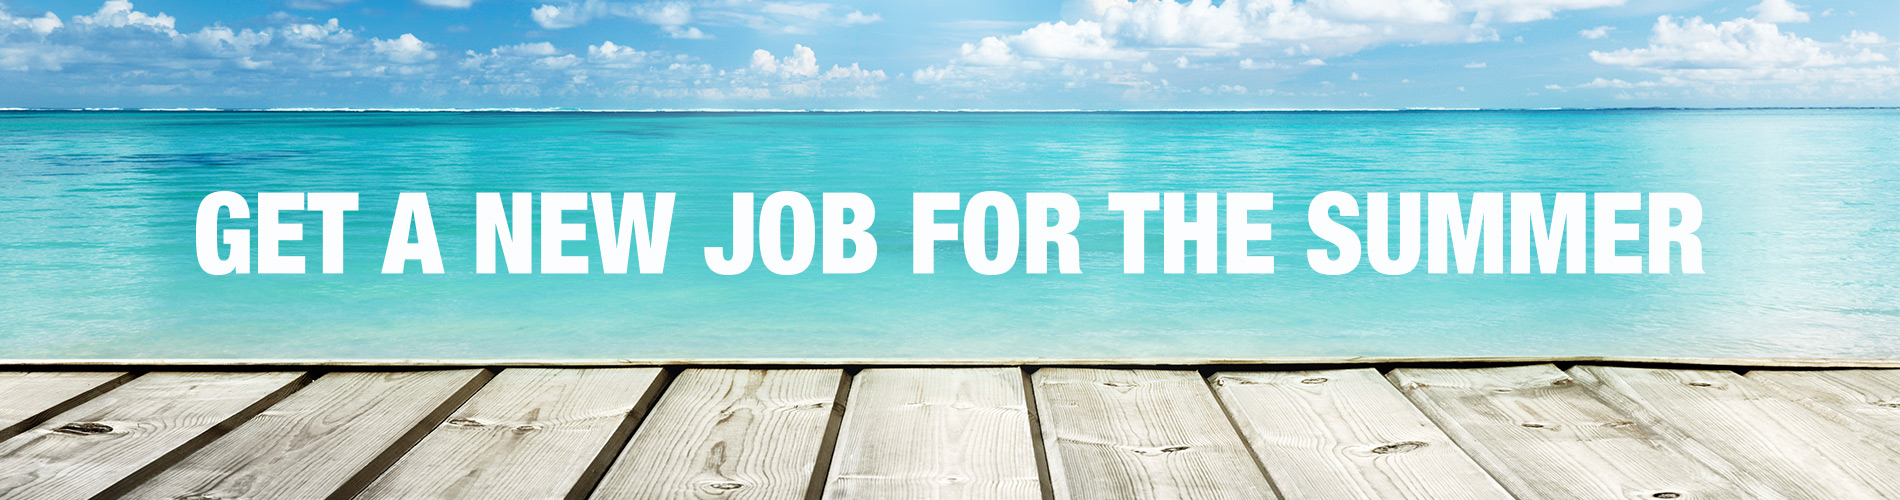 Summer Hiring Front Page Banner - Version 4